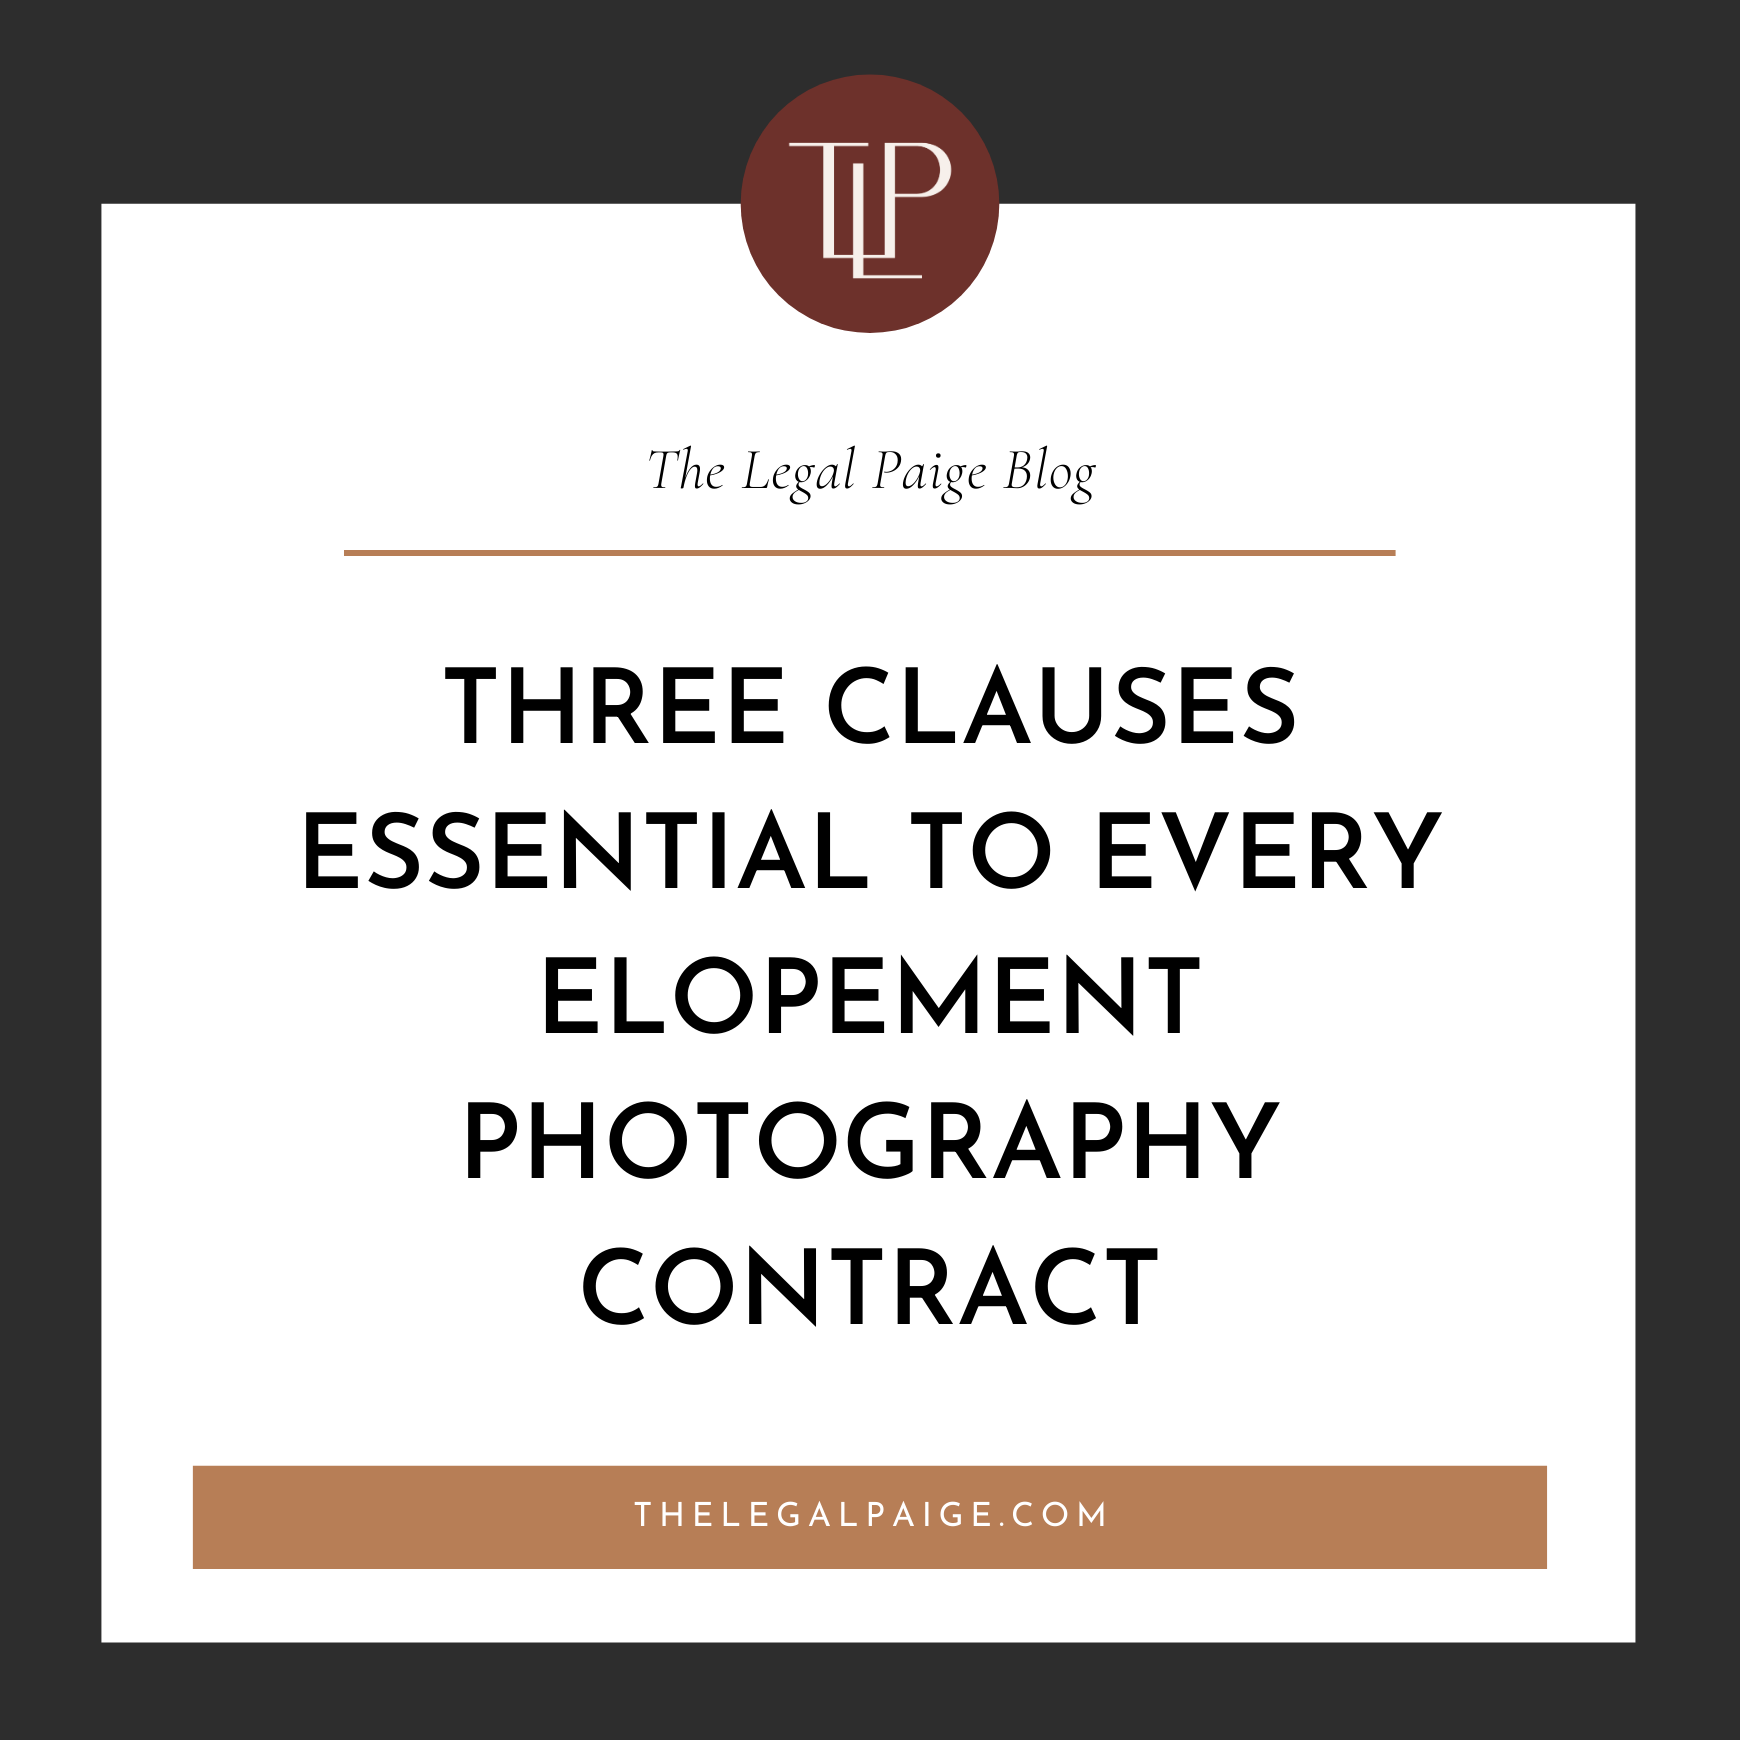 Three Clauses Essential to Every Elopement Photography Contract